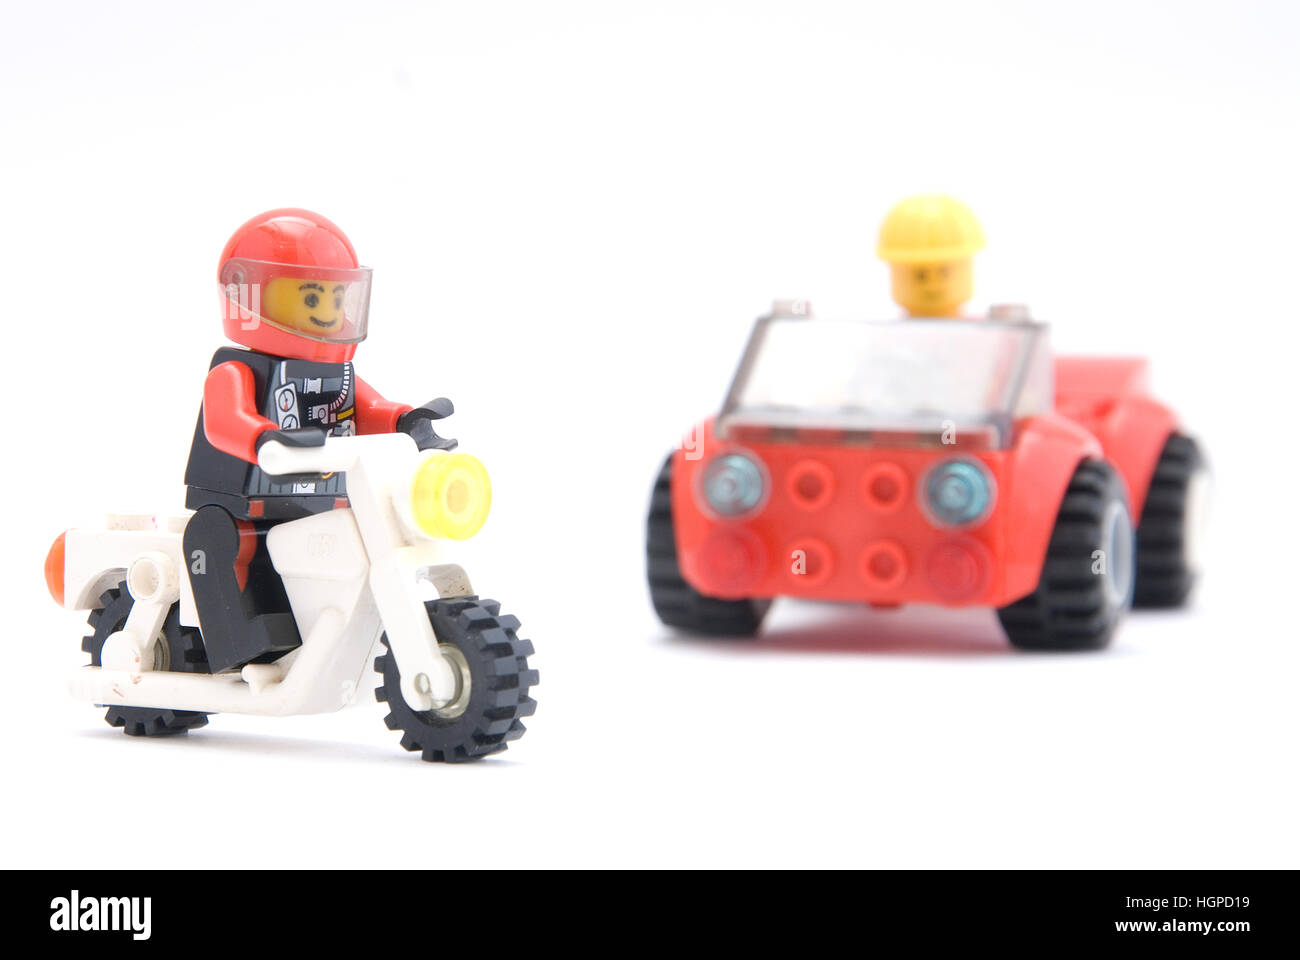 Mini figure Lego driving motorcycle and car - Stock Image